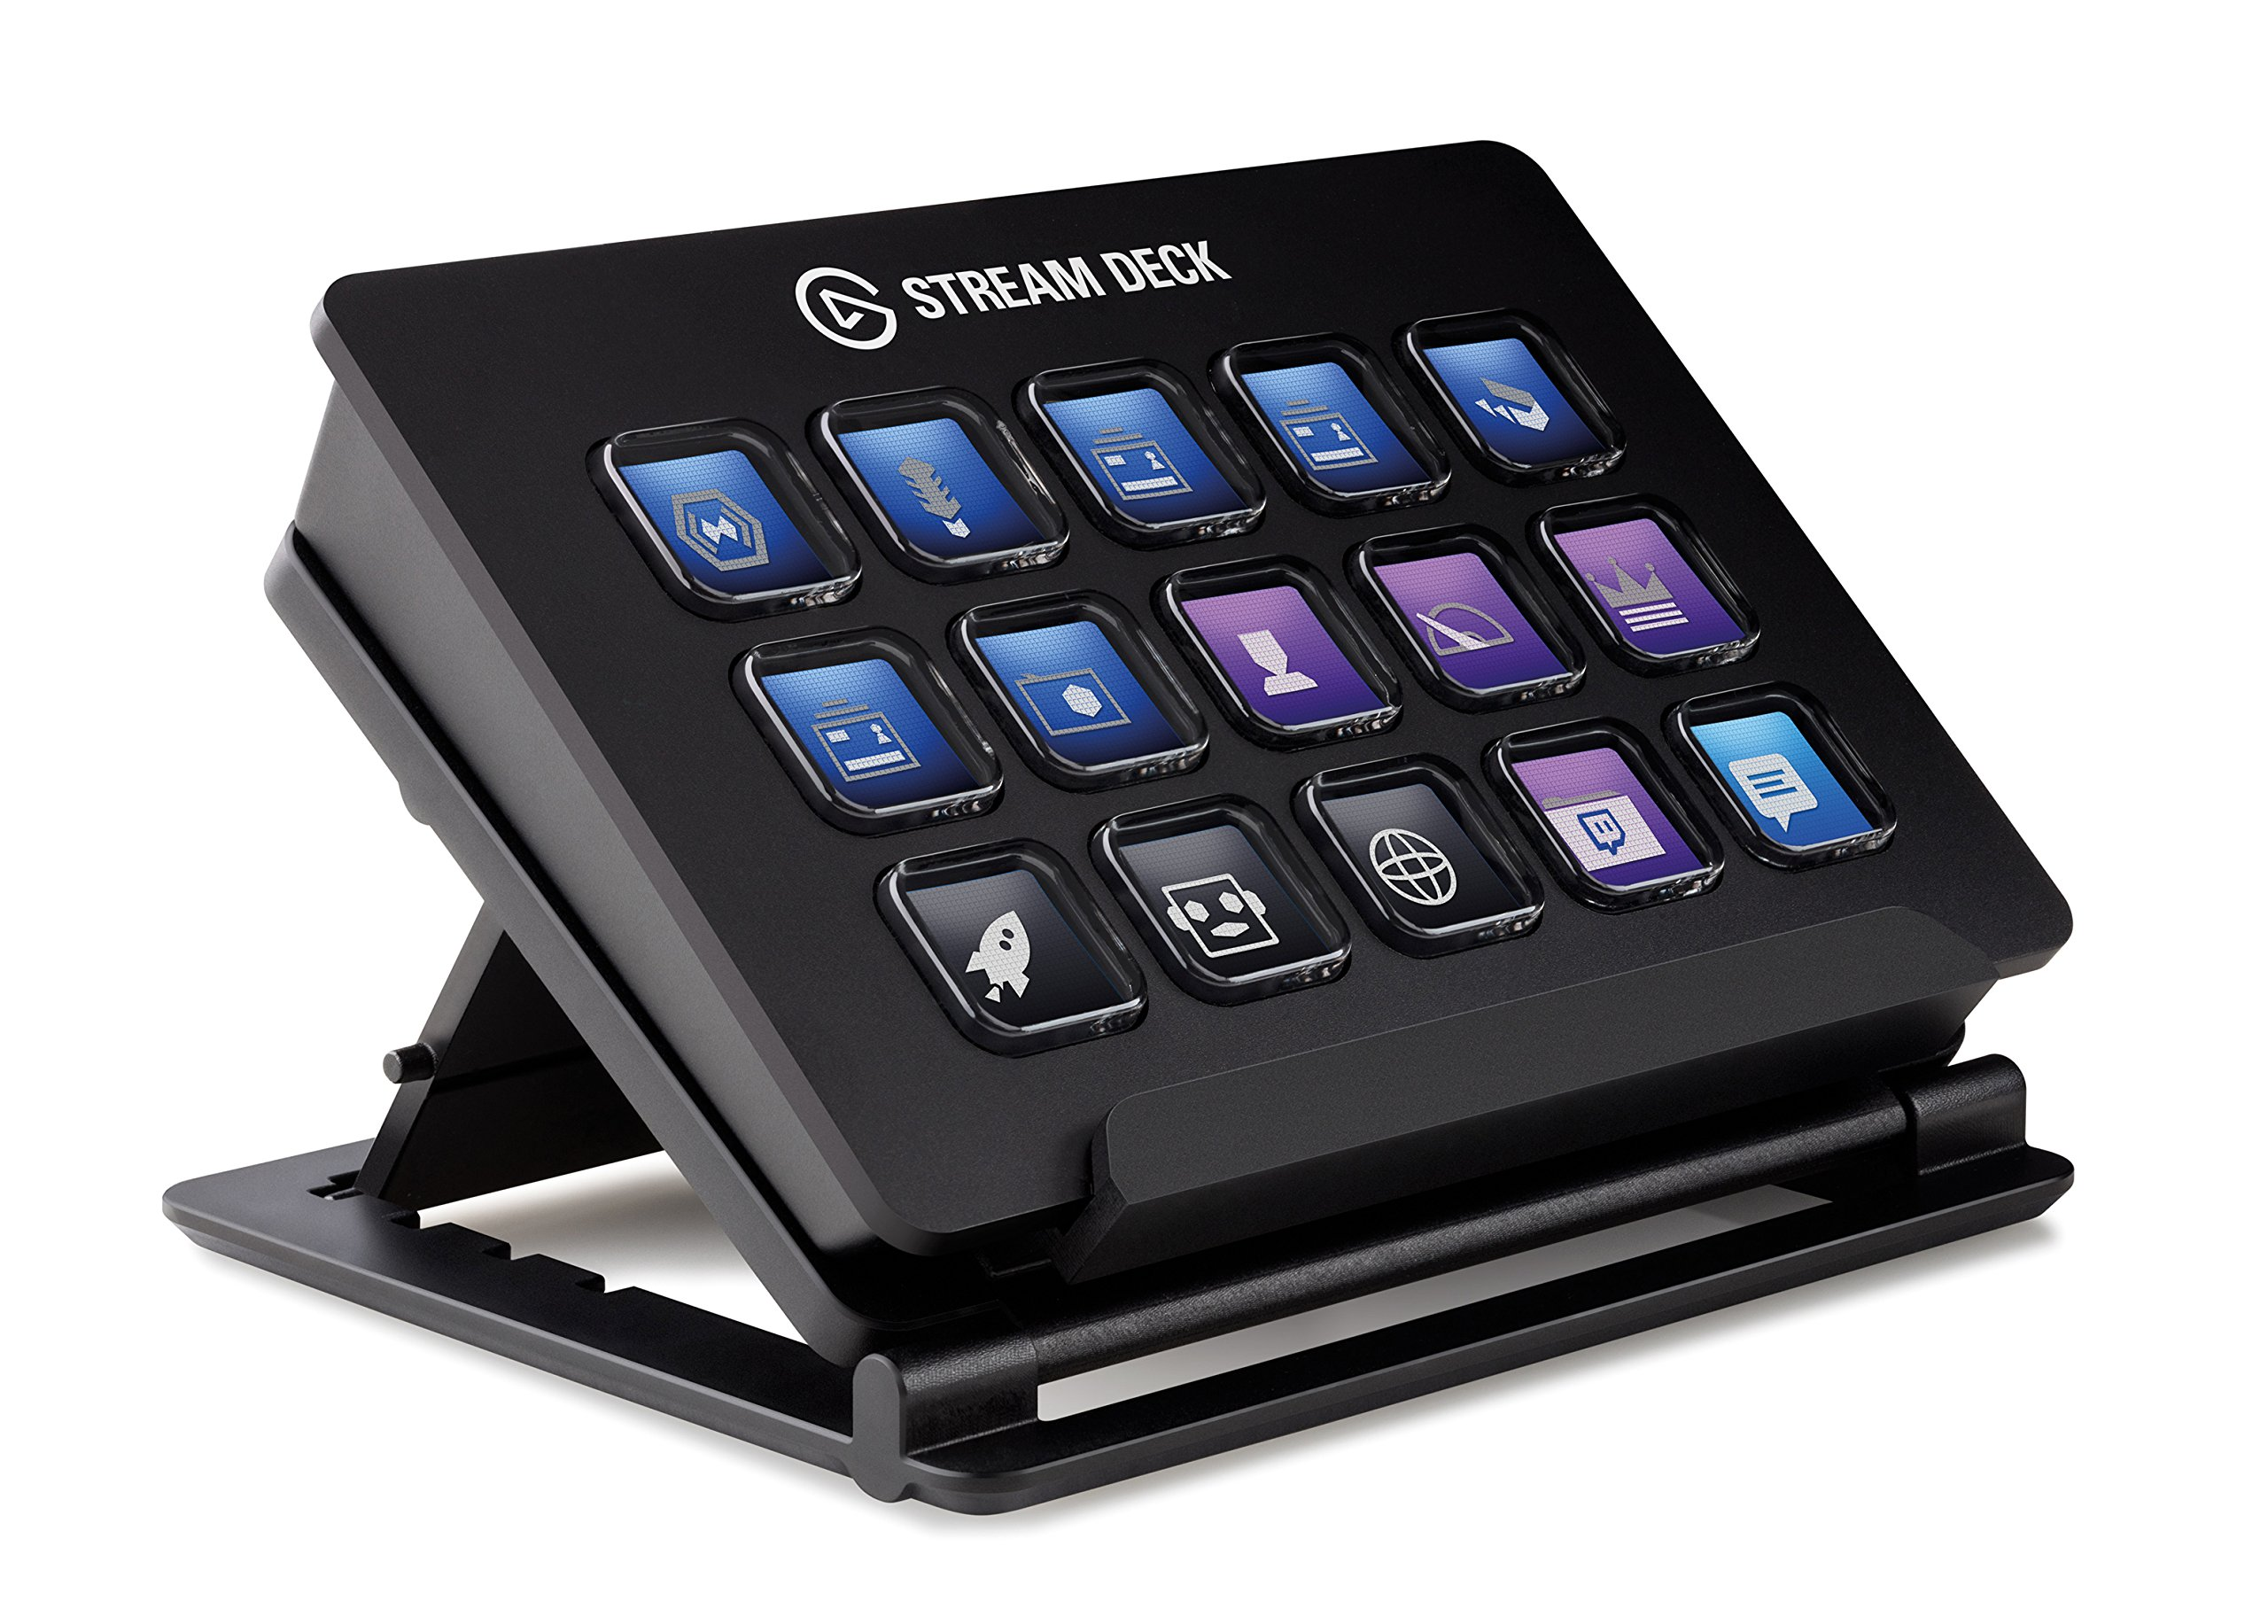 Elgato Stream Deck - Live Content Creation Controller with 15 customizable LCD keys, adjustable stand, for Windows 10 and macOS 10.11 or later by Corsair